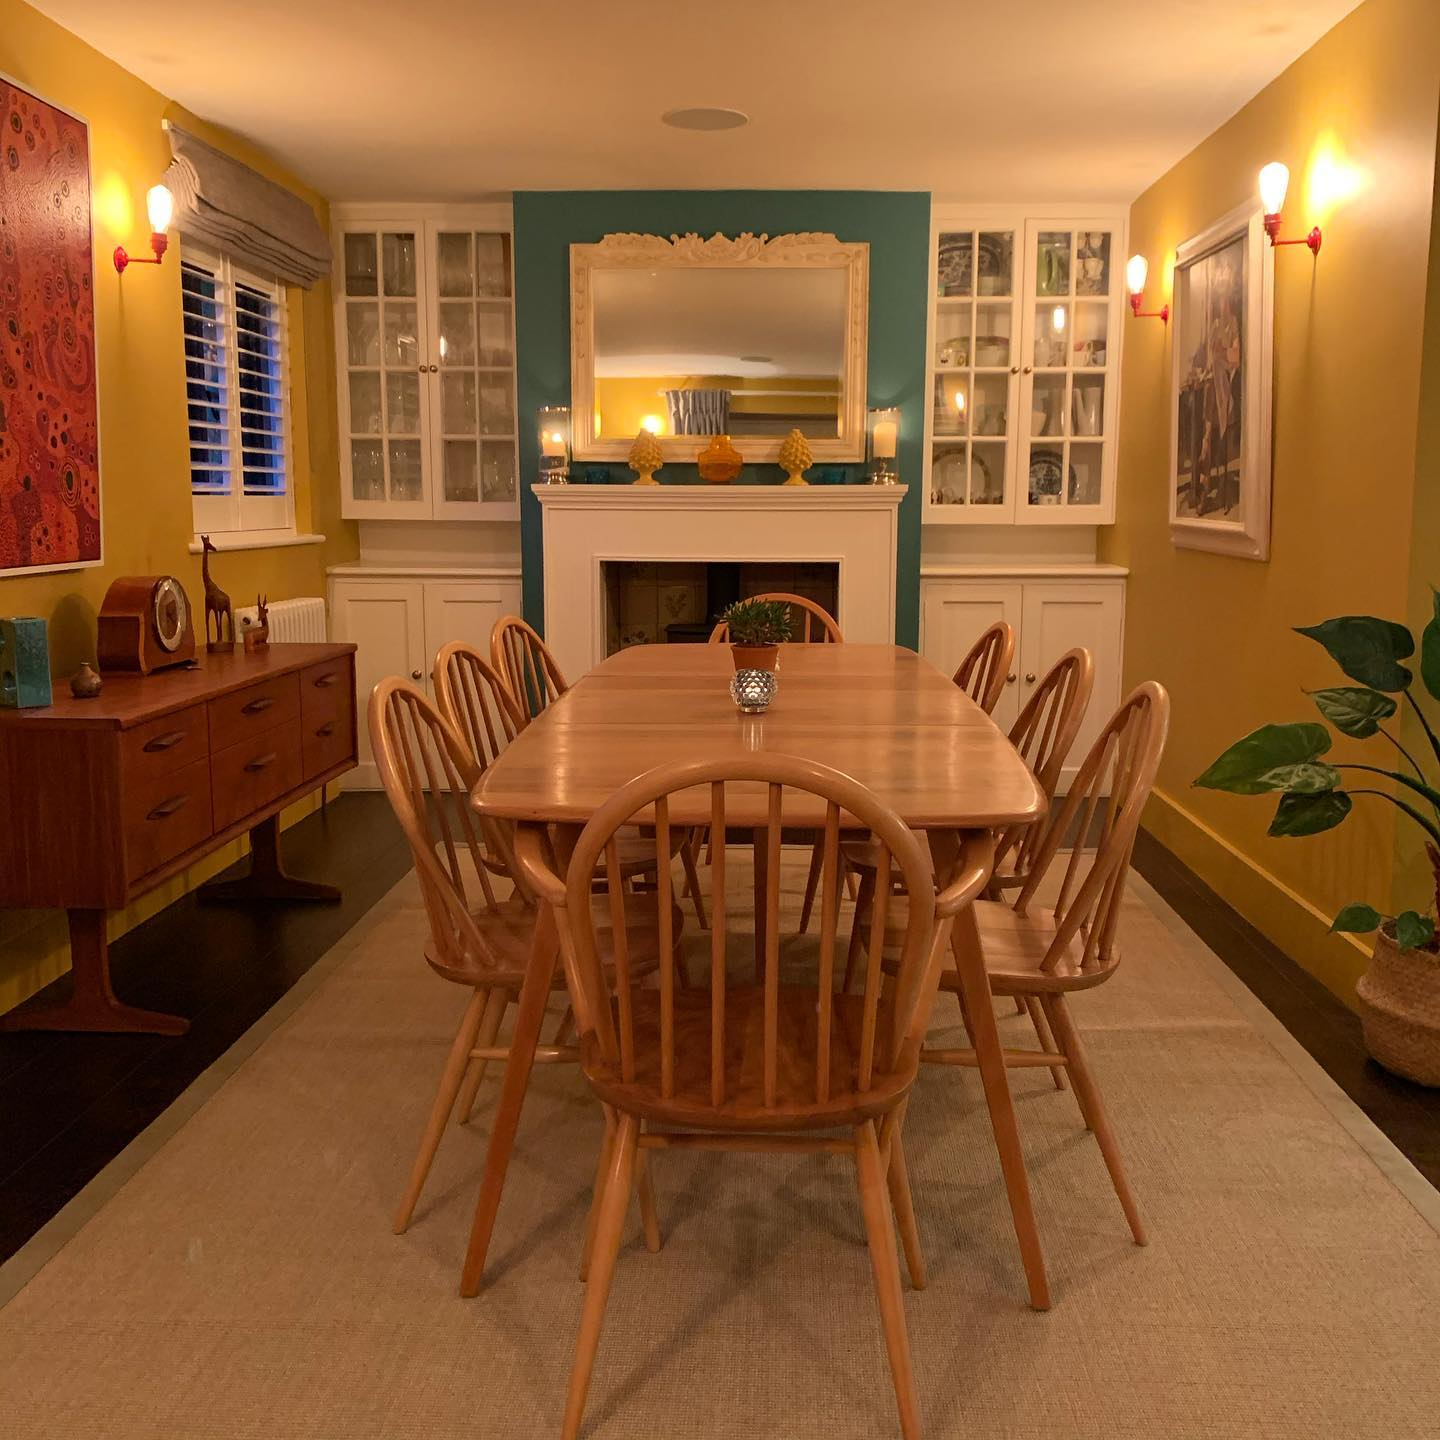 I banish thee grey Winter from our home! Dining room redecorated! @littlegreenepaintcompany #yellow-pink